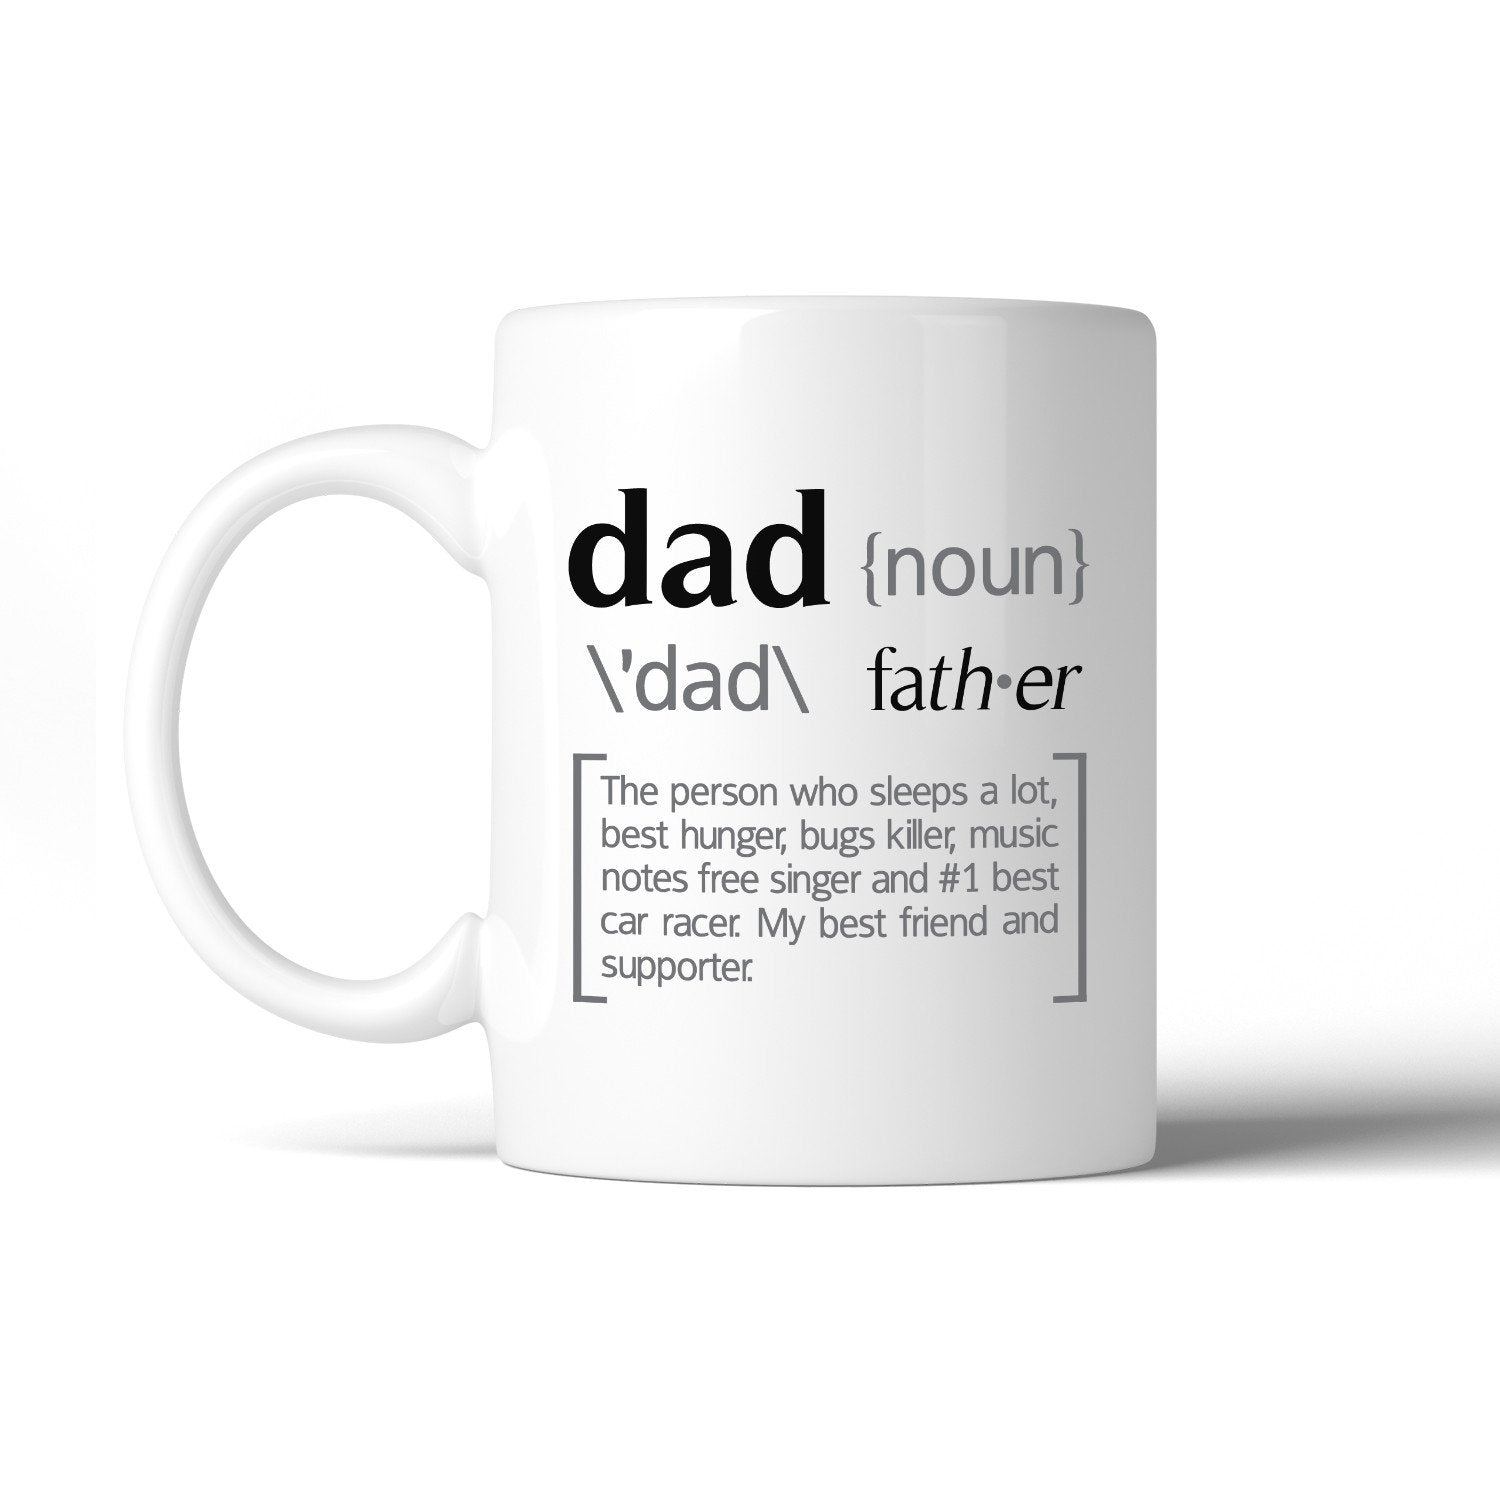 Dad Noun White Ceramic Coffee Mug Funny Design - Cream and Sugar Coffee House & Brewing Co.